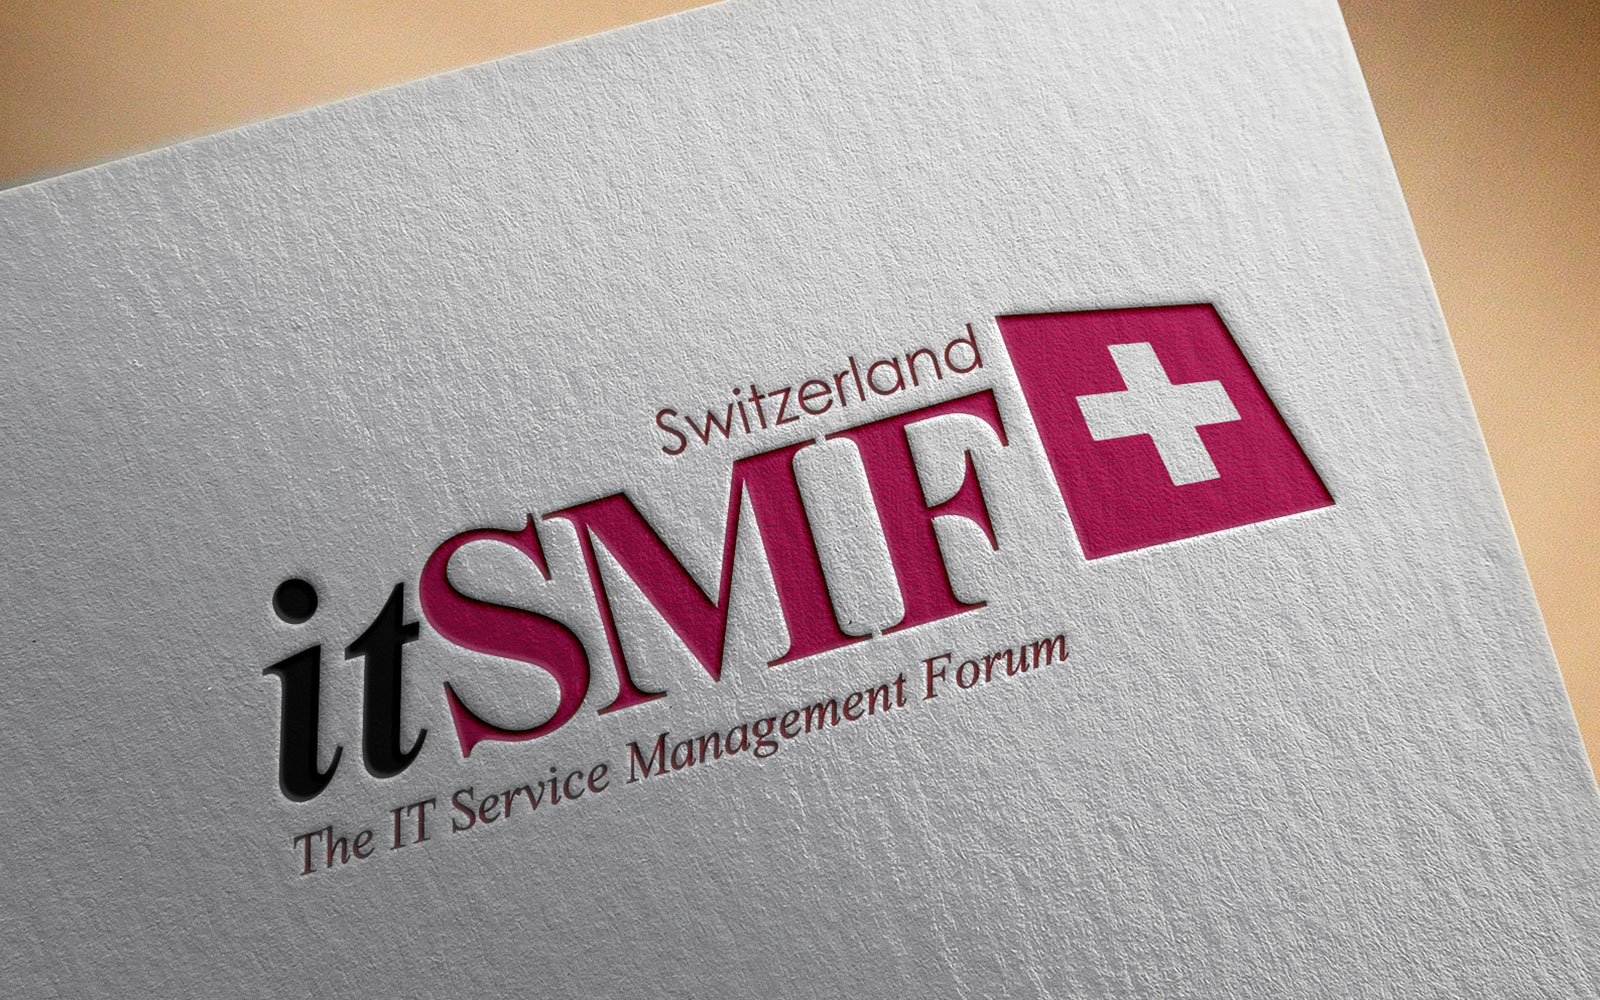 itsmf-logo-redesign-lugano-marketing-manthea